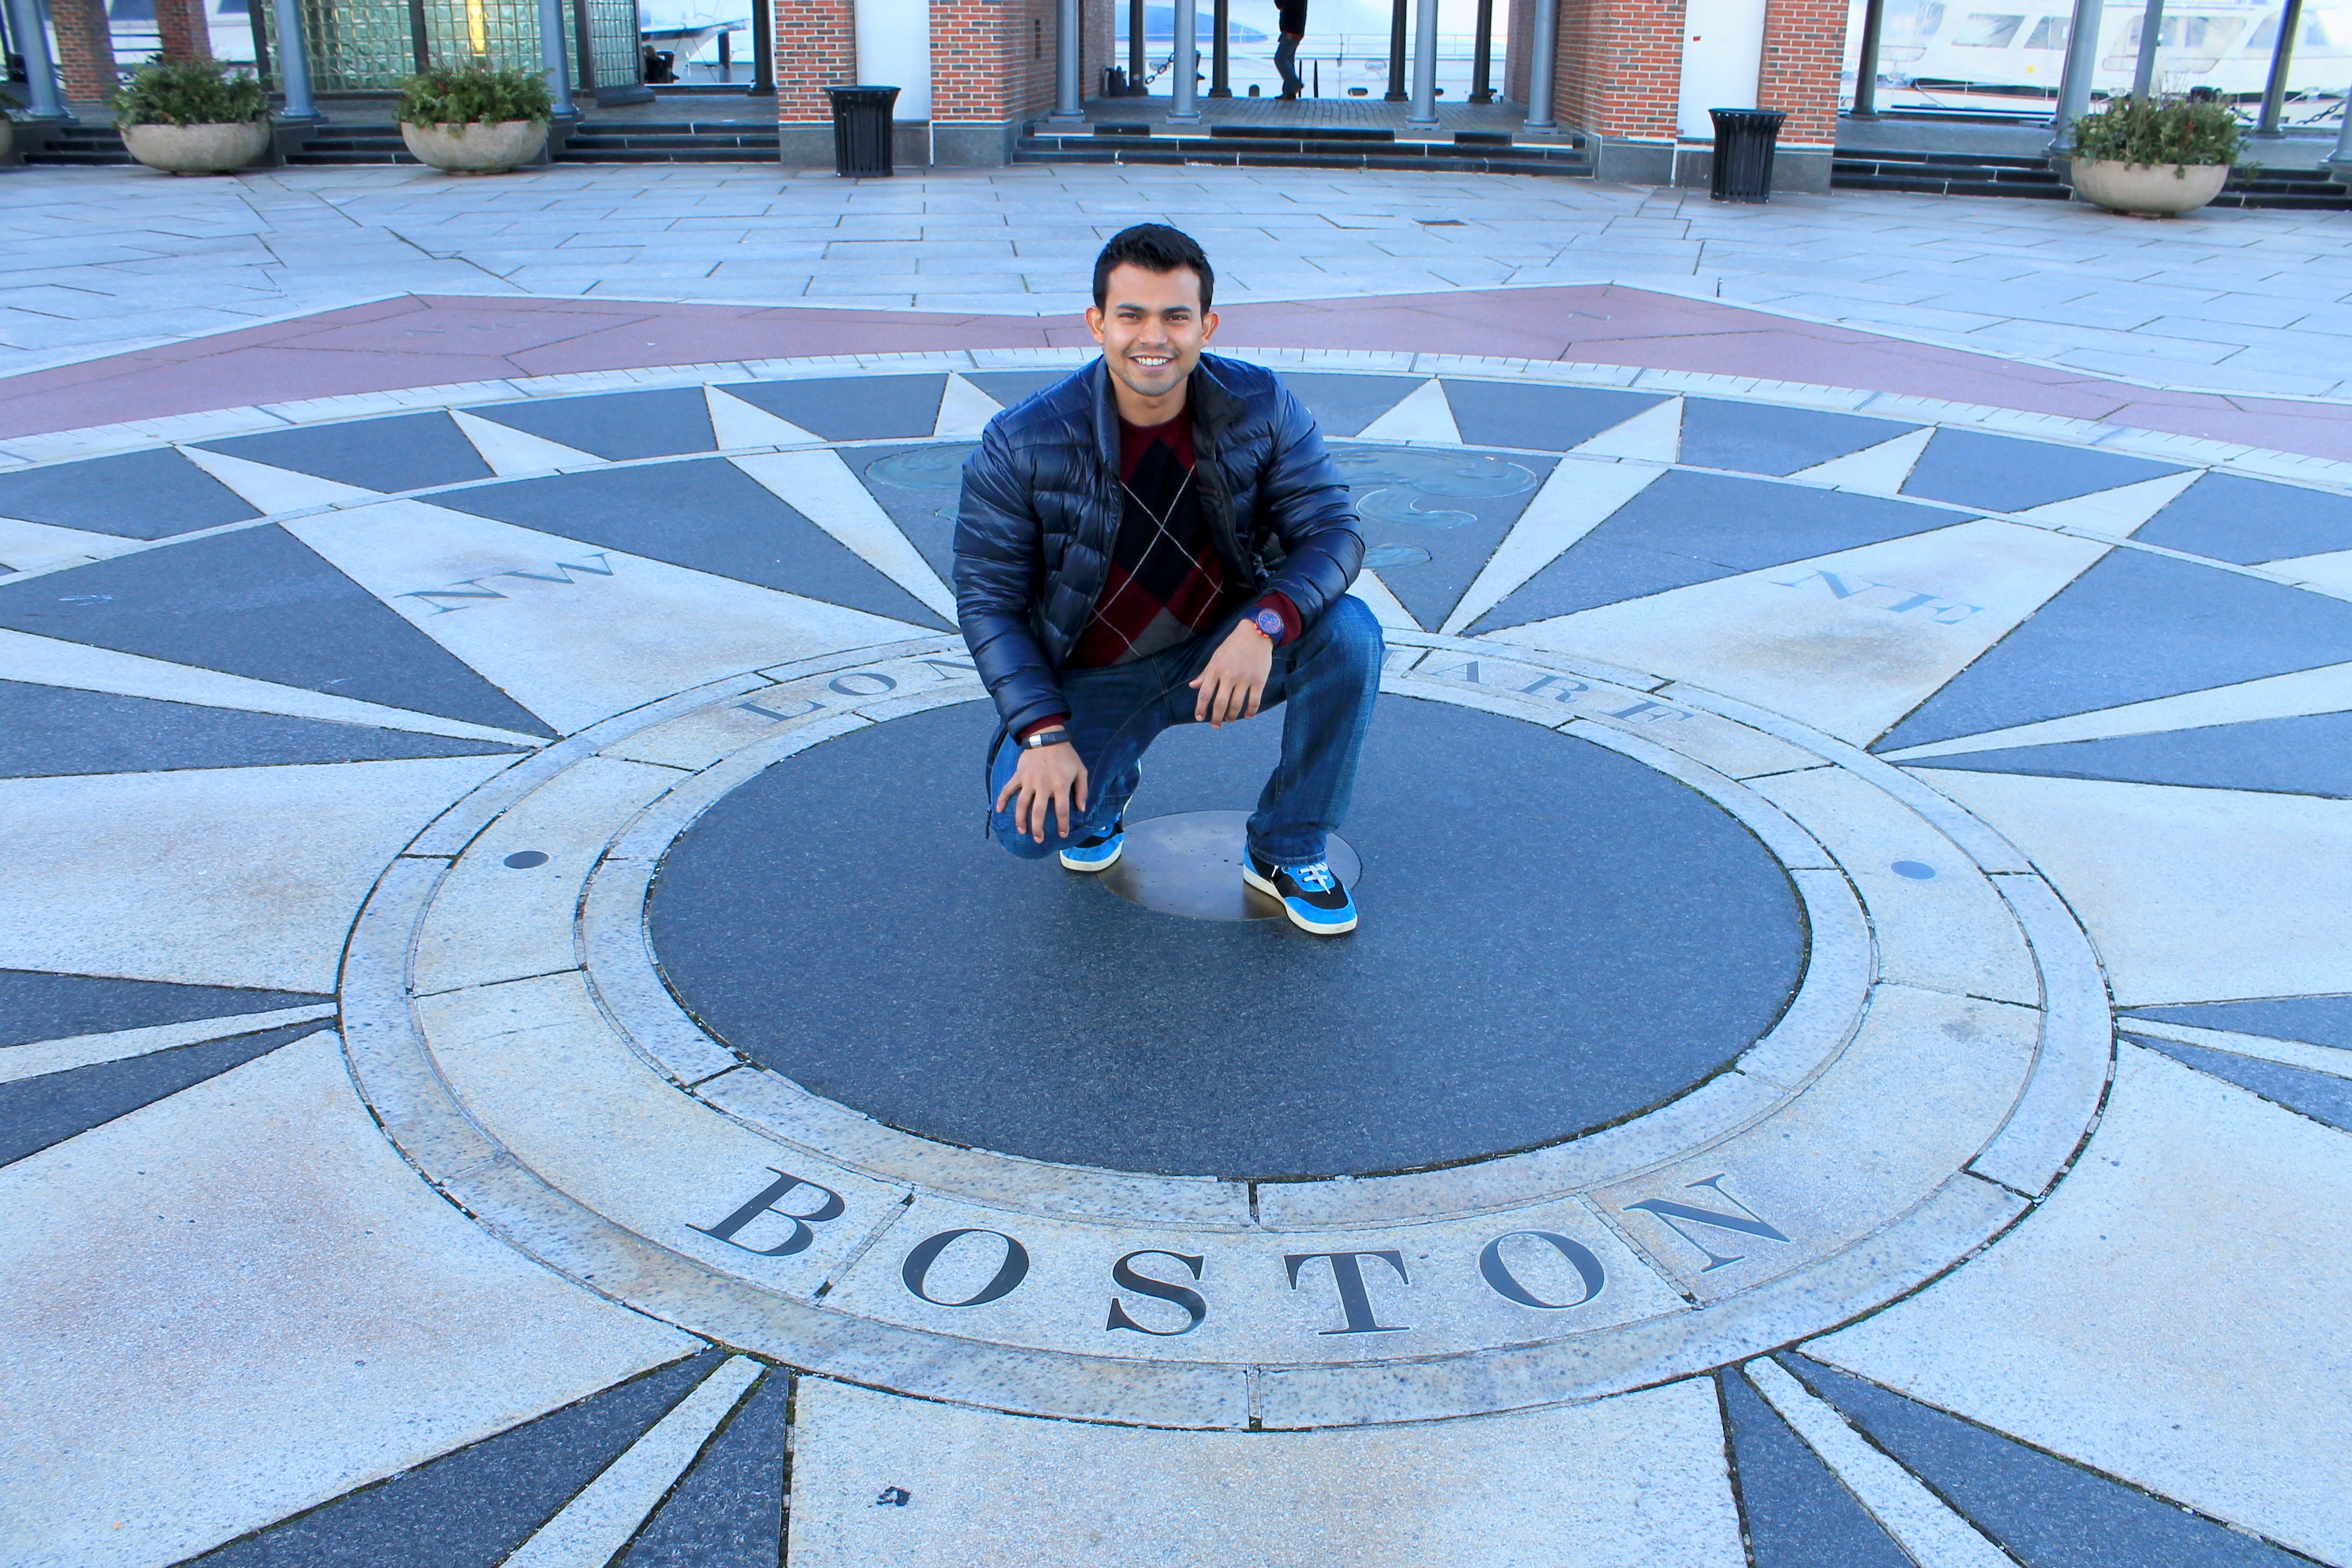 salil posing for author photoshoot in boston